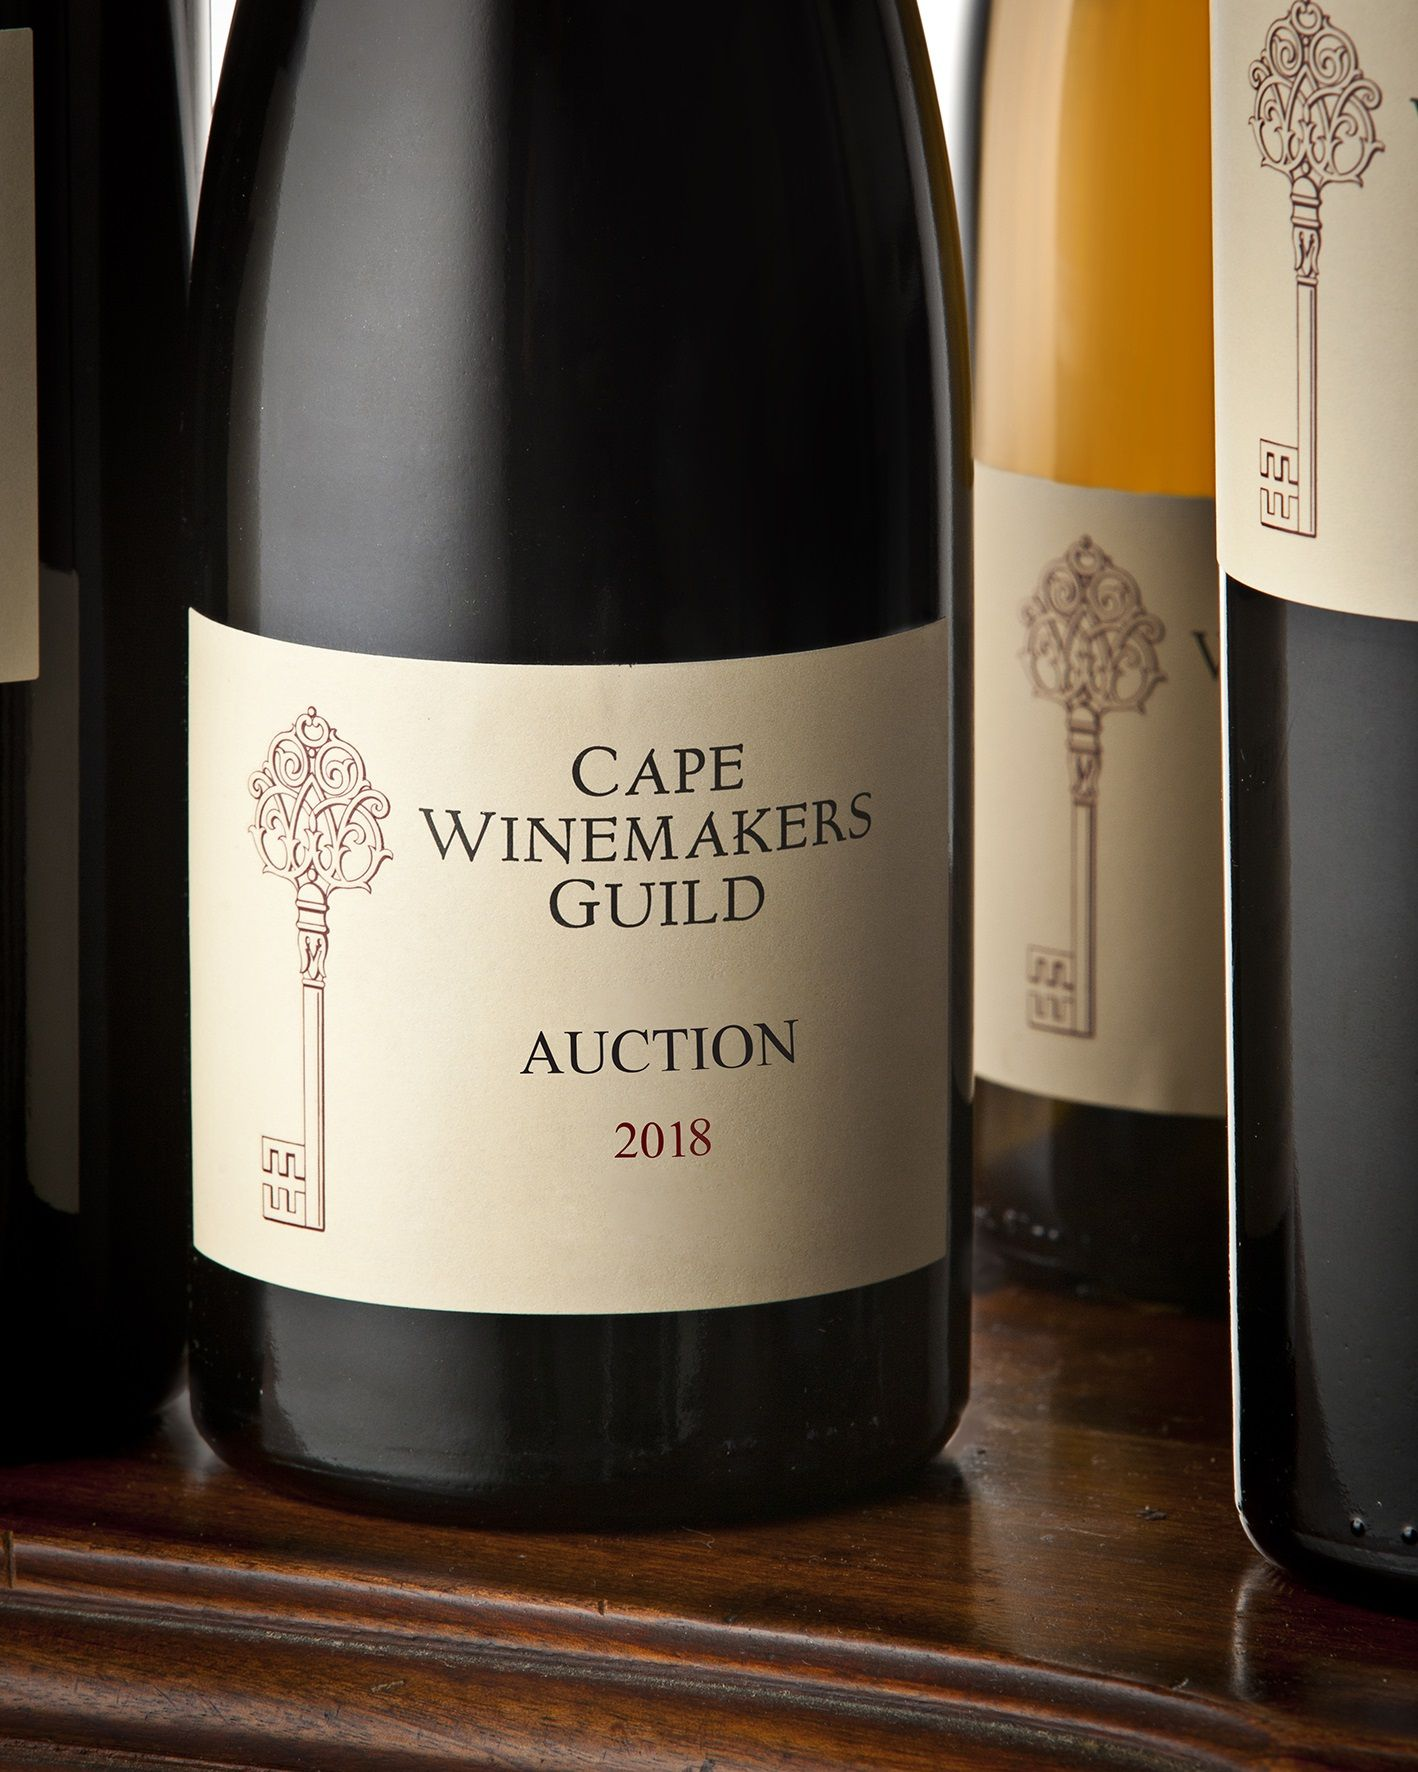 8 Lots Of Cape Winemakers Guild Auction Wines Pay It Forward For Young Winemakers photo